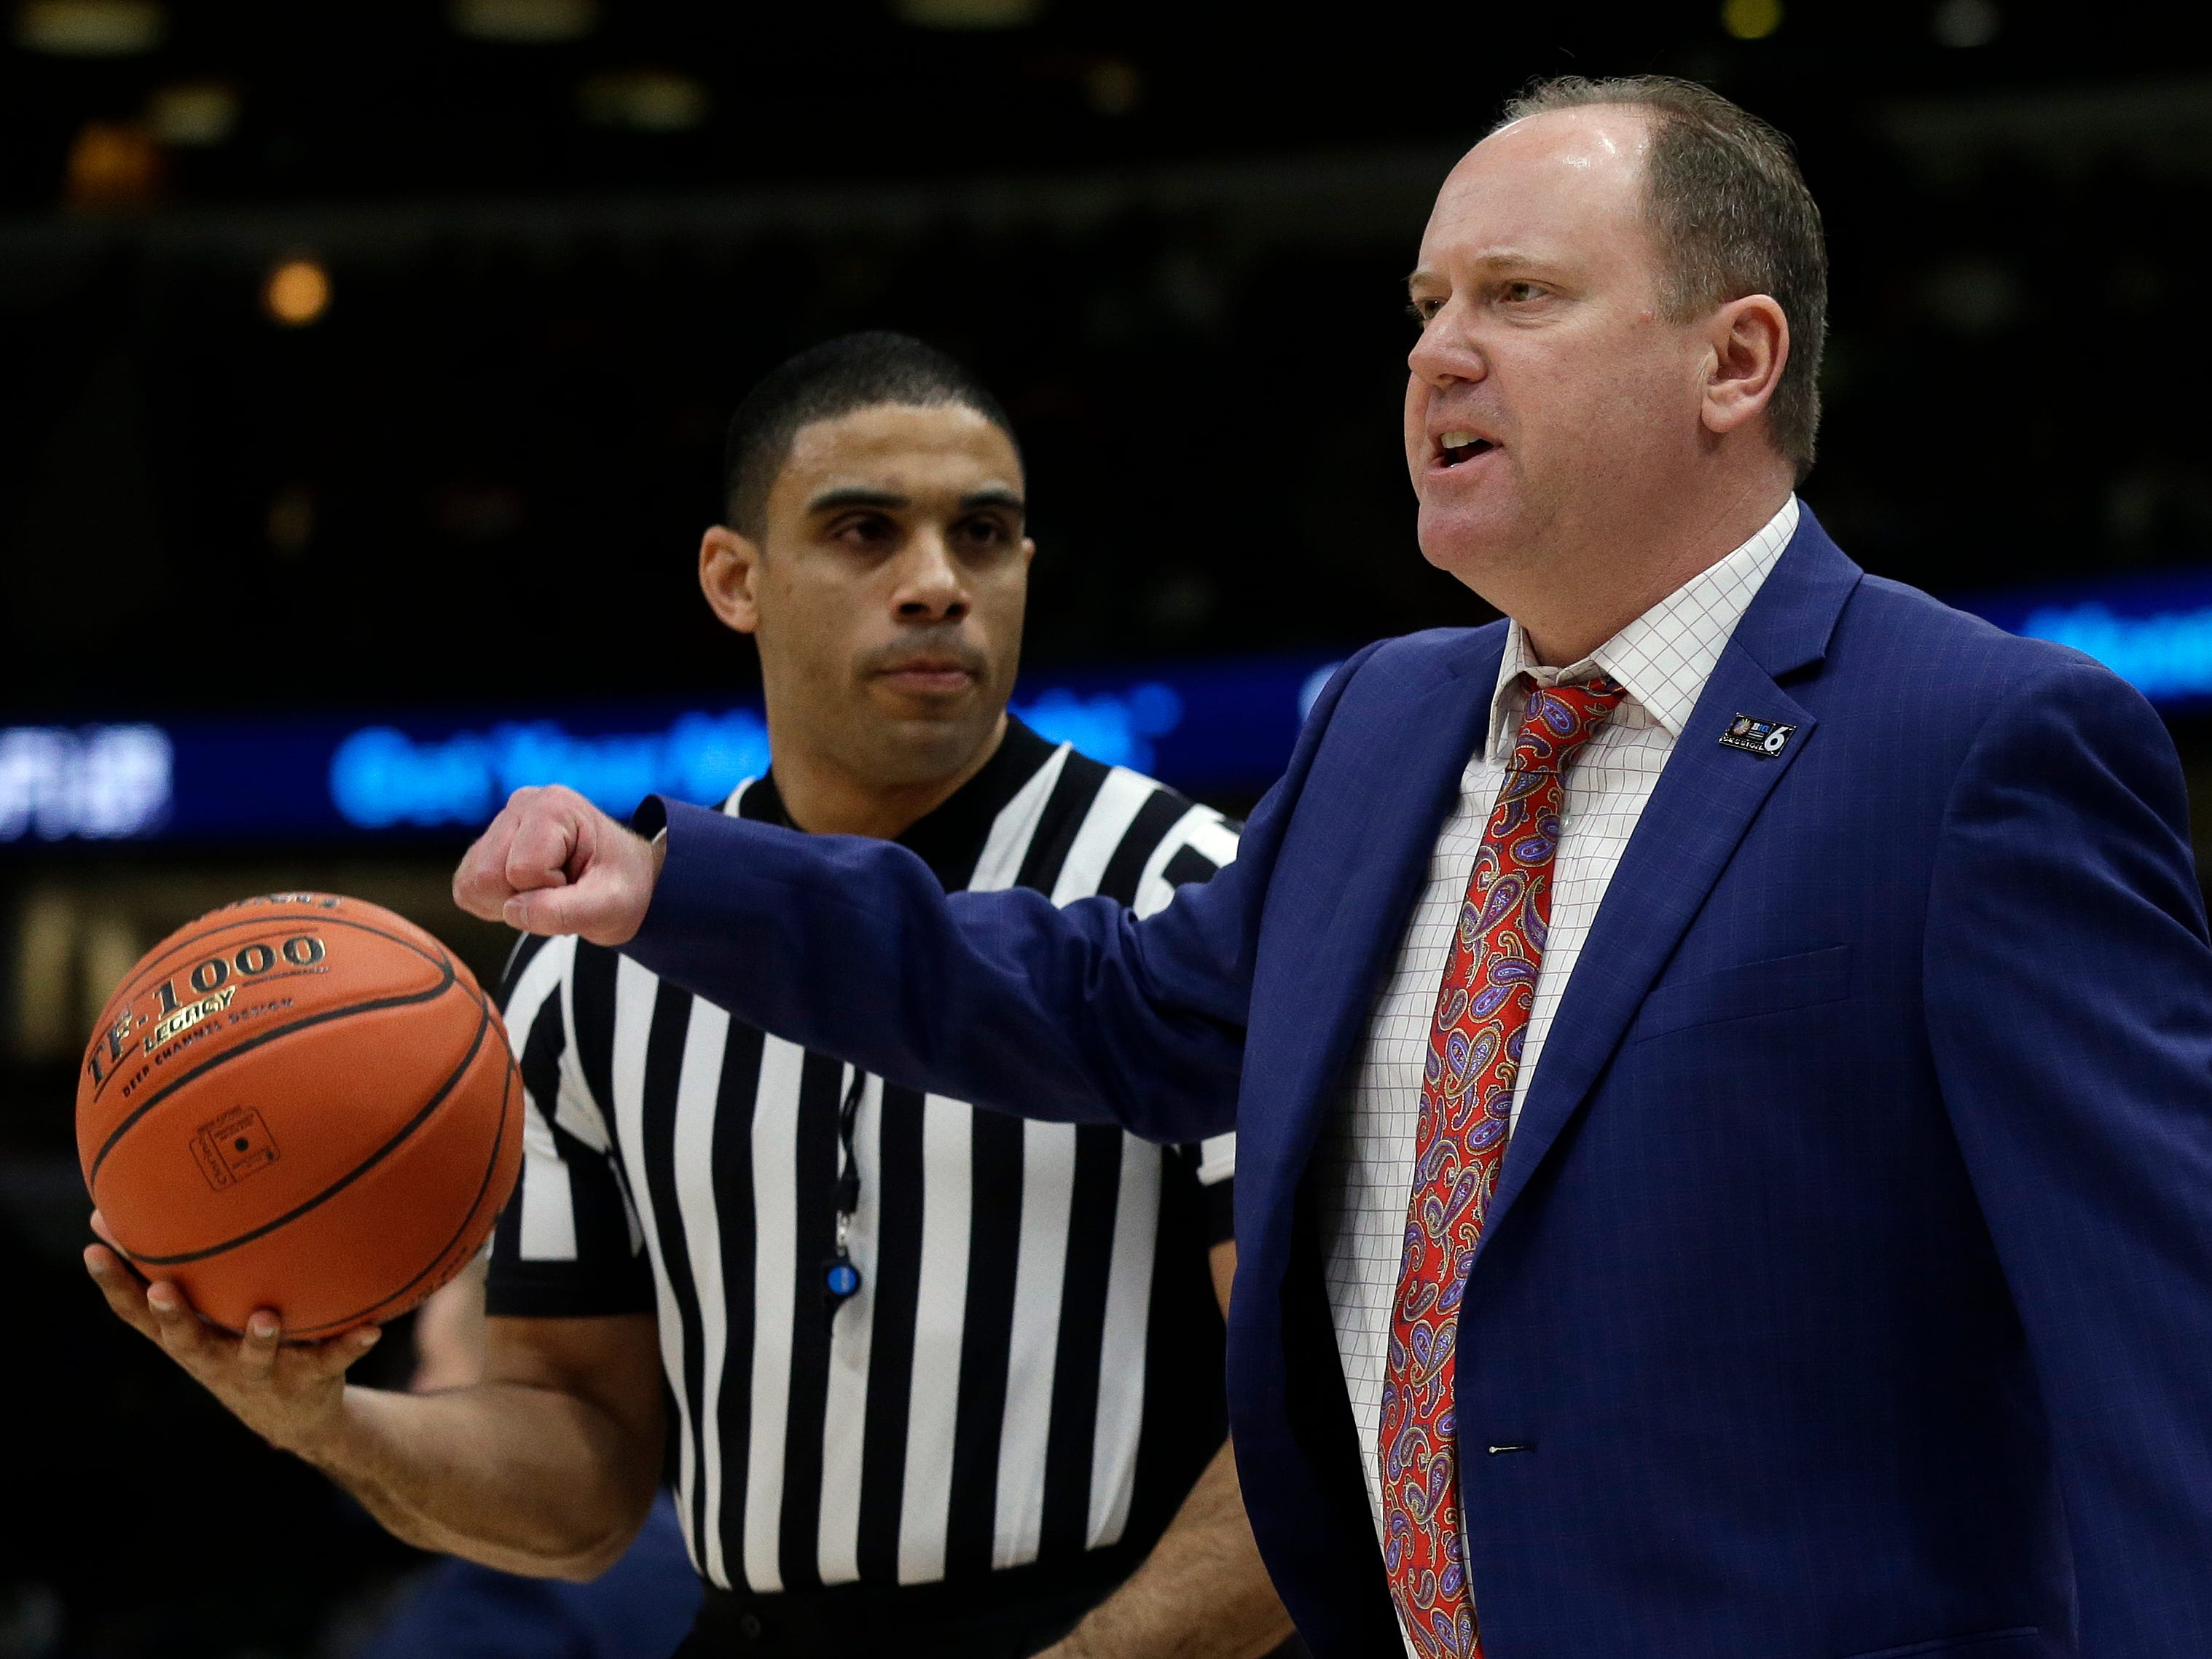 Wisconsin head coach Greg Gard argues a call during the first half.